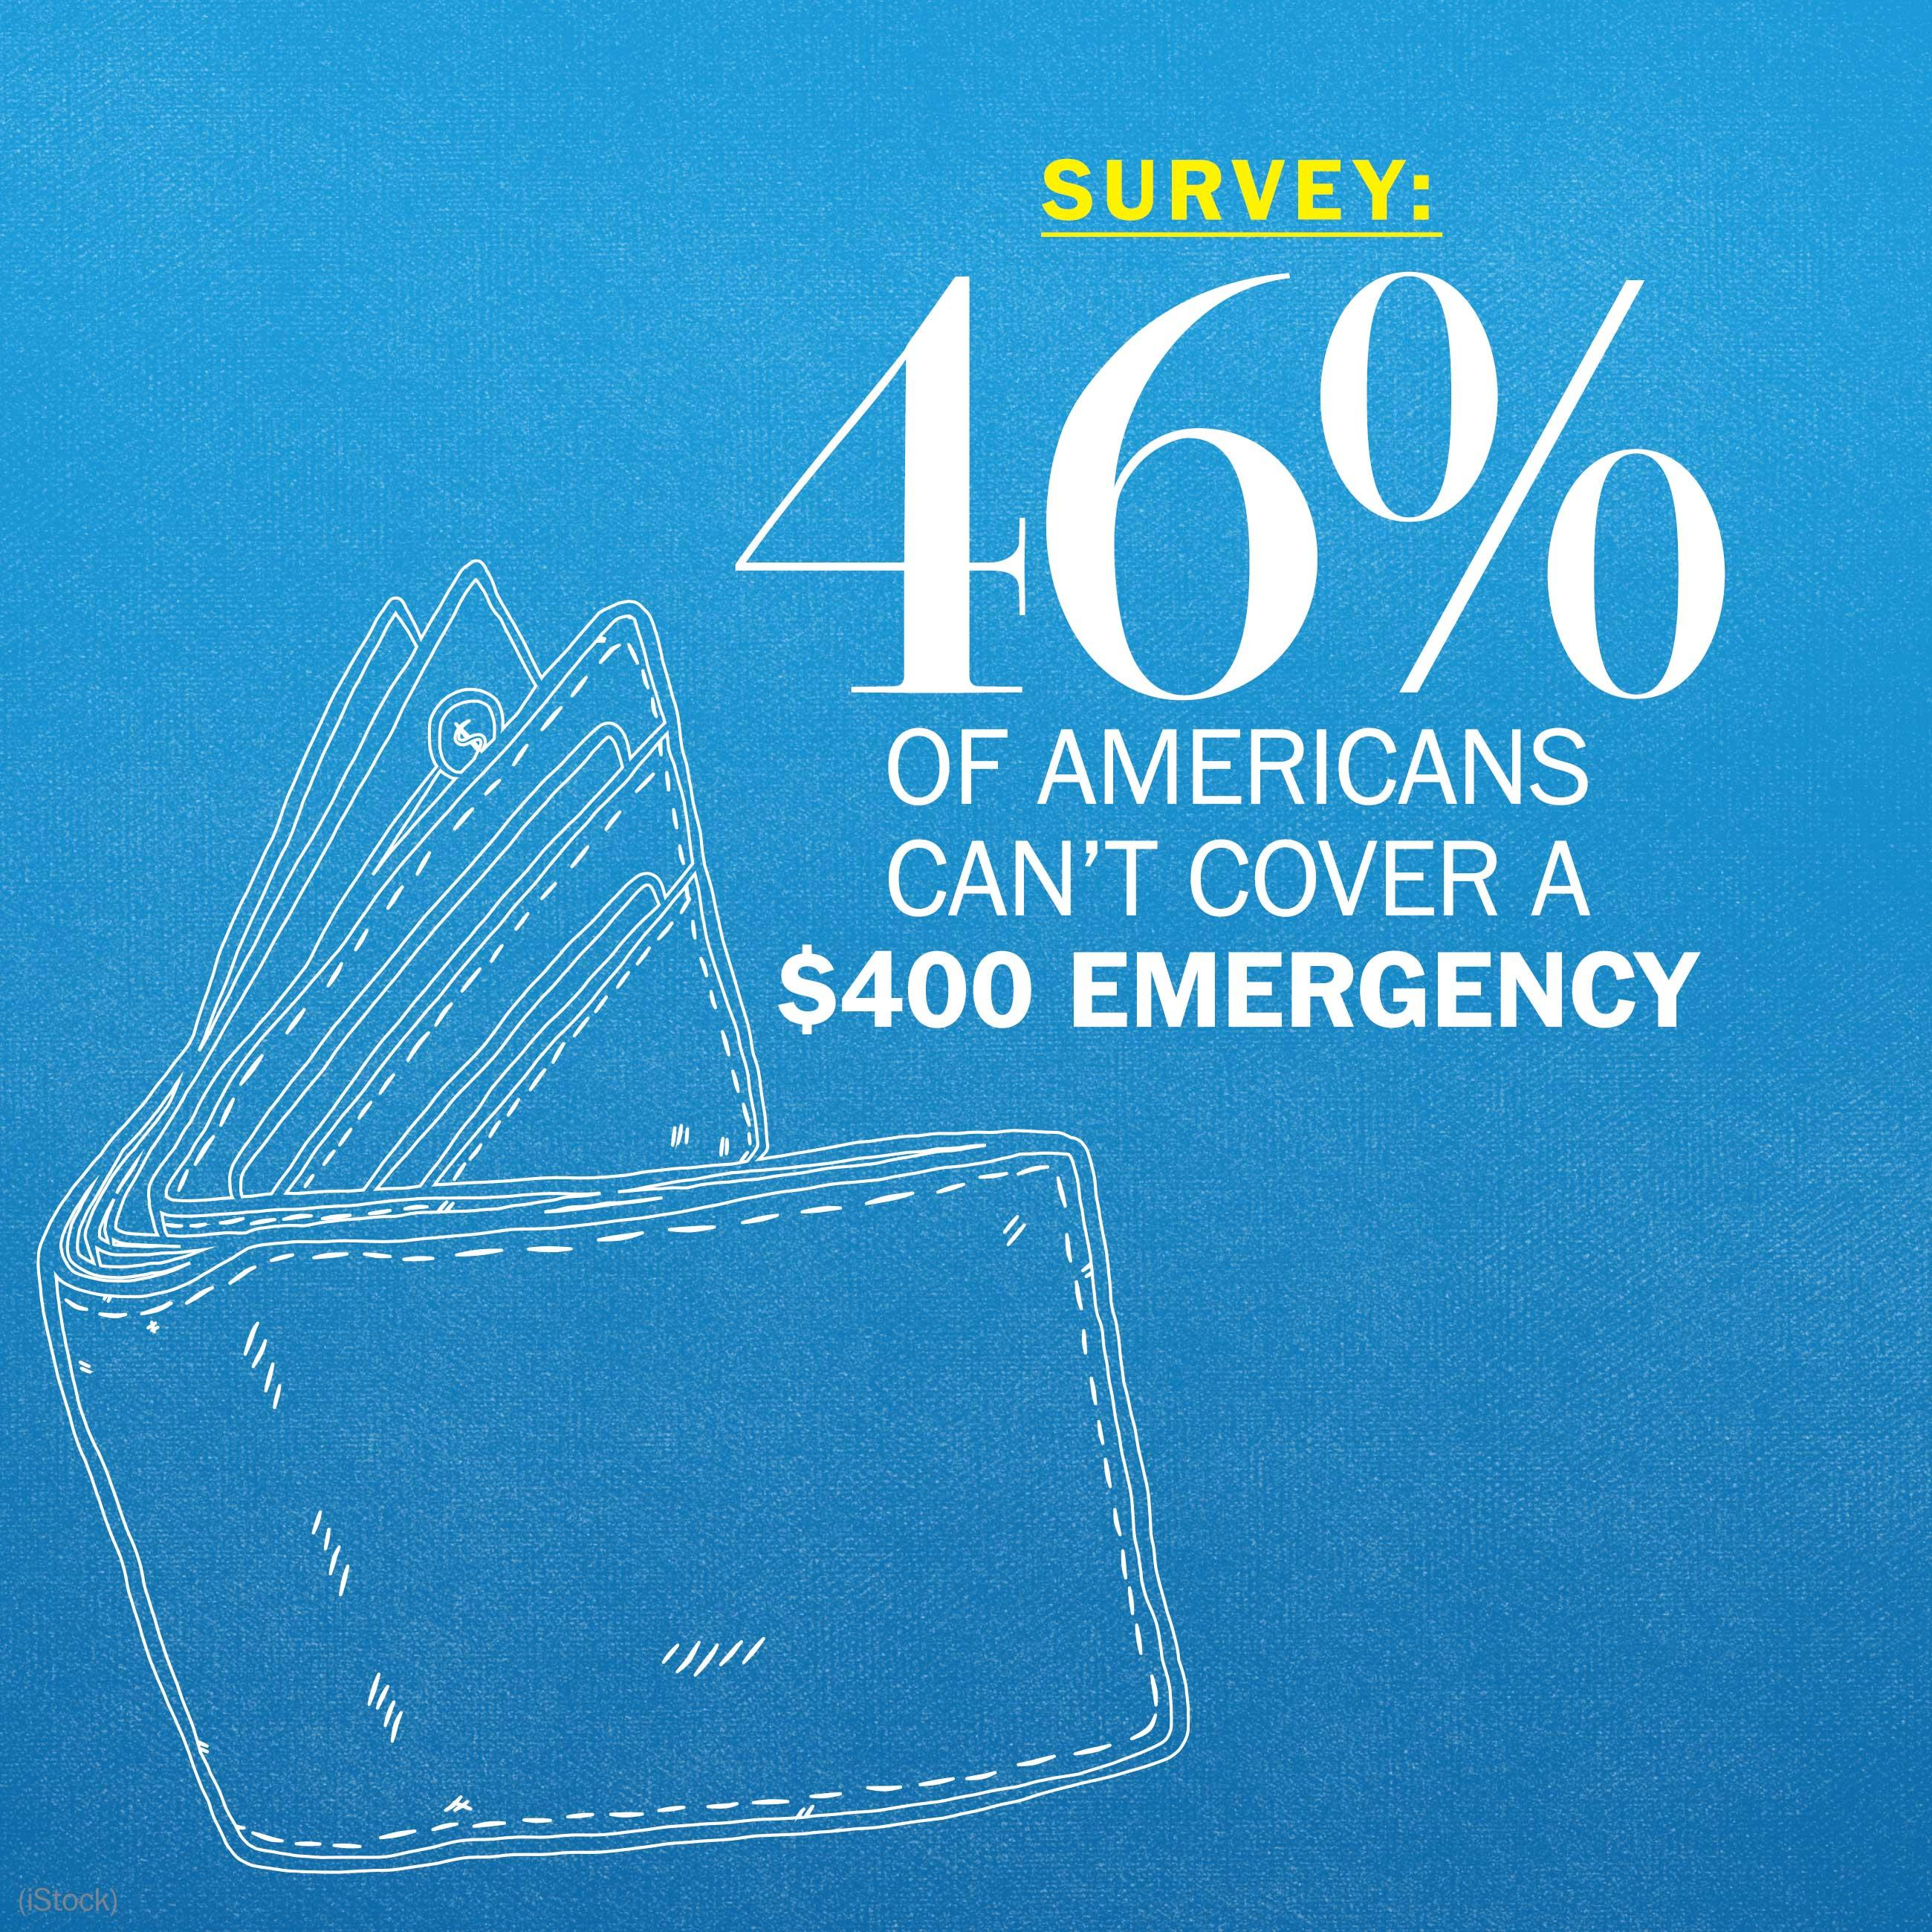 The shocking number of Americans who can't cover a $400 expense